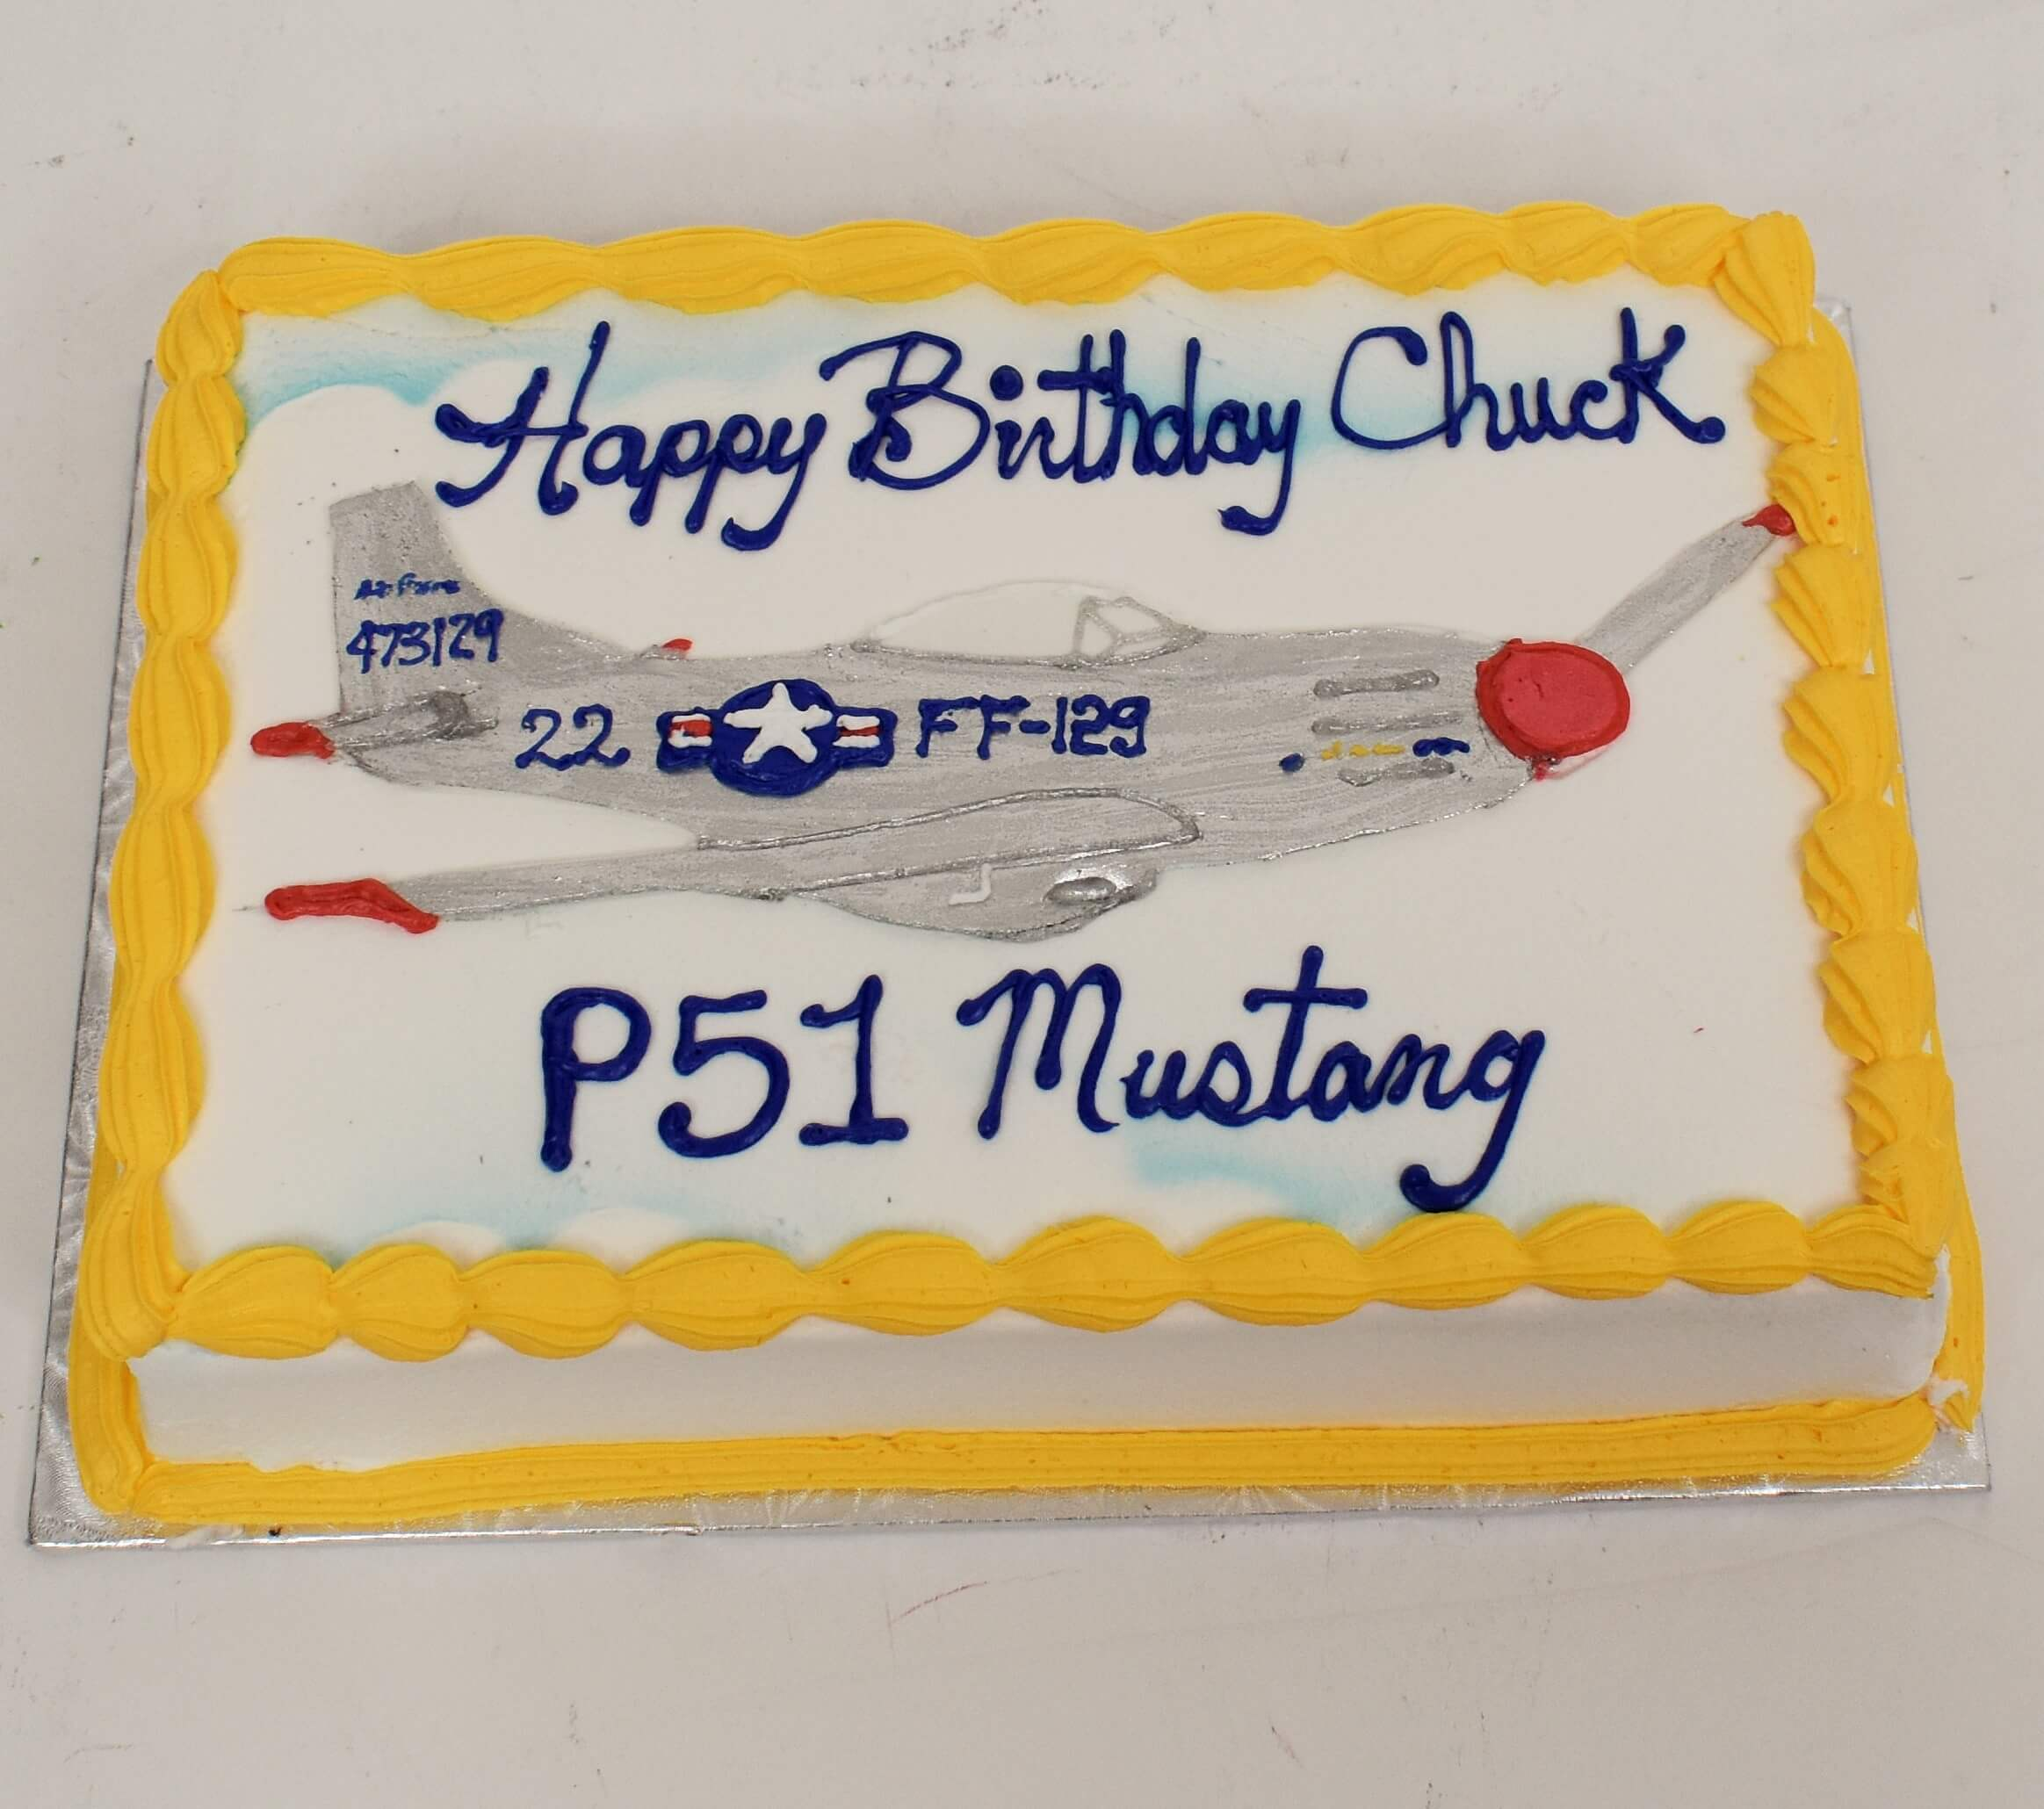 McArthur's Bakery Custom Cake With P51 Mustang Airplane